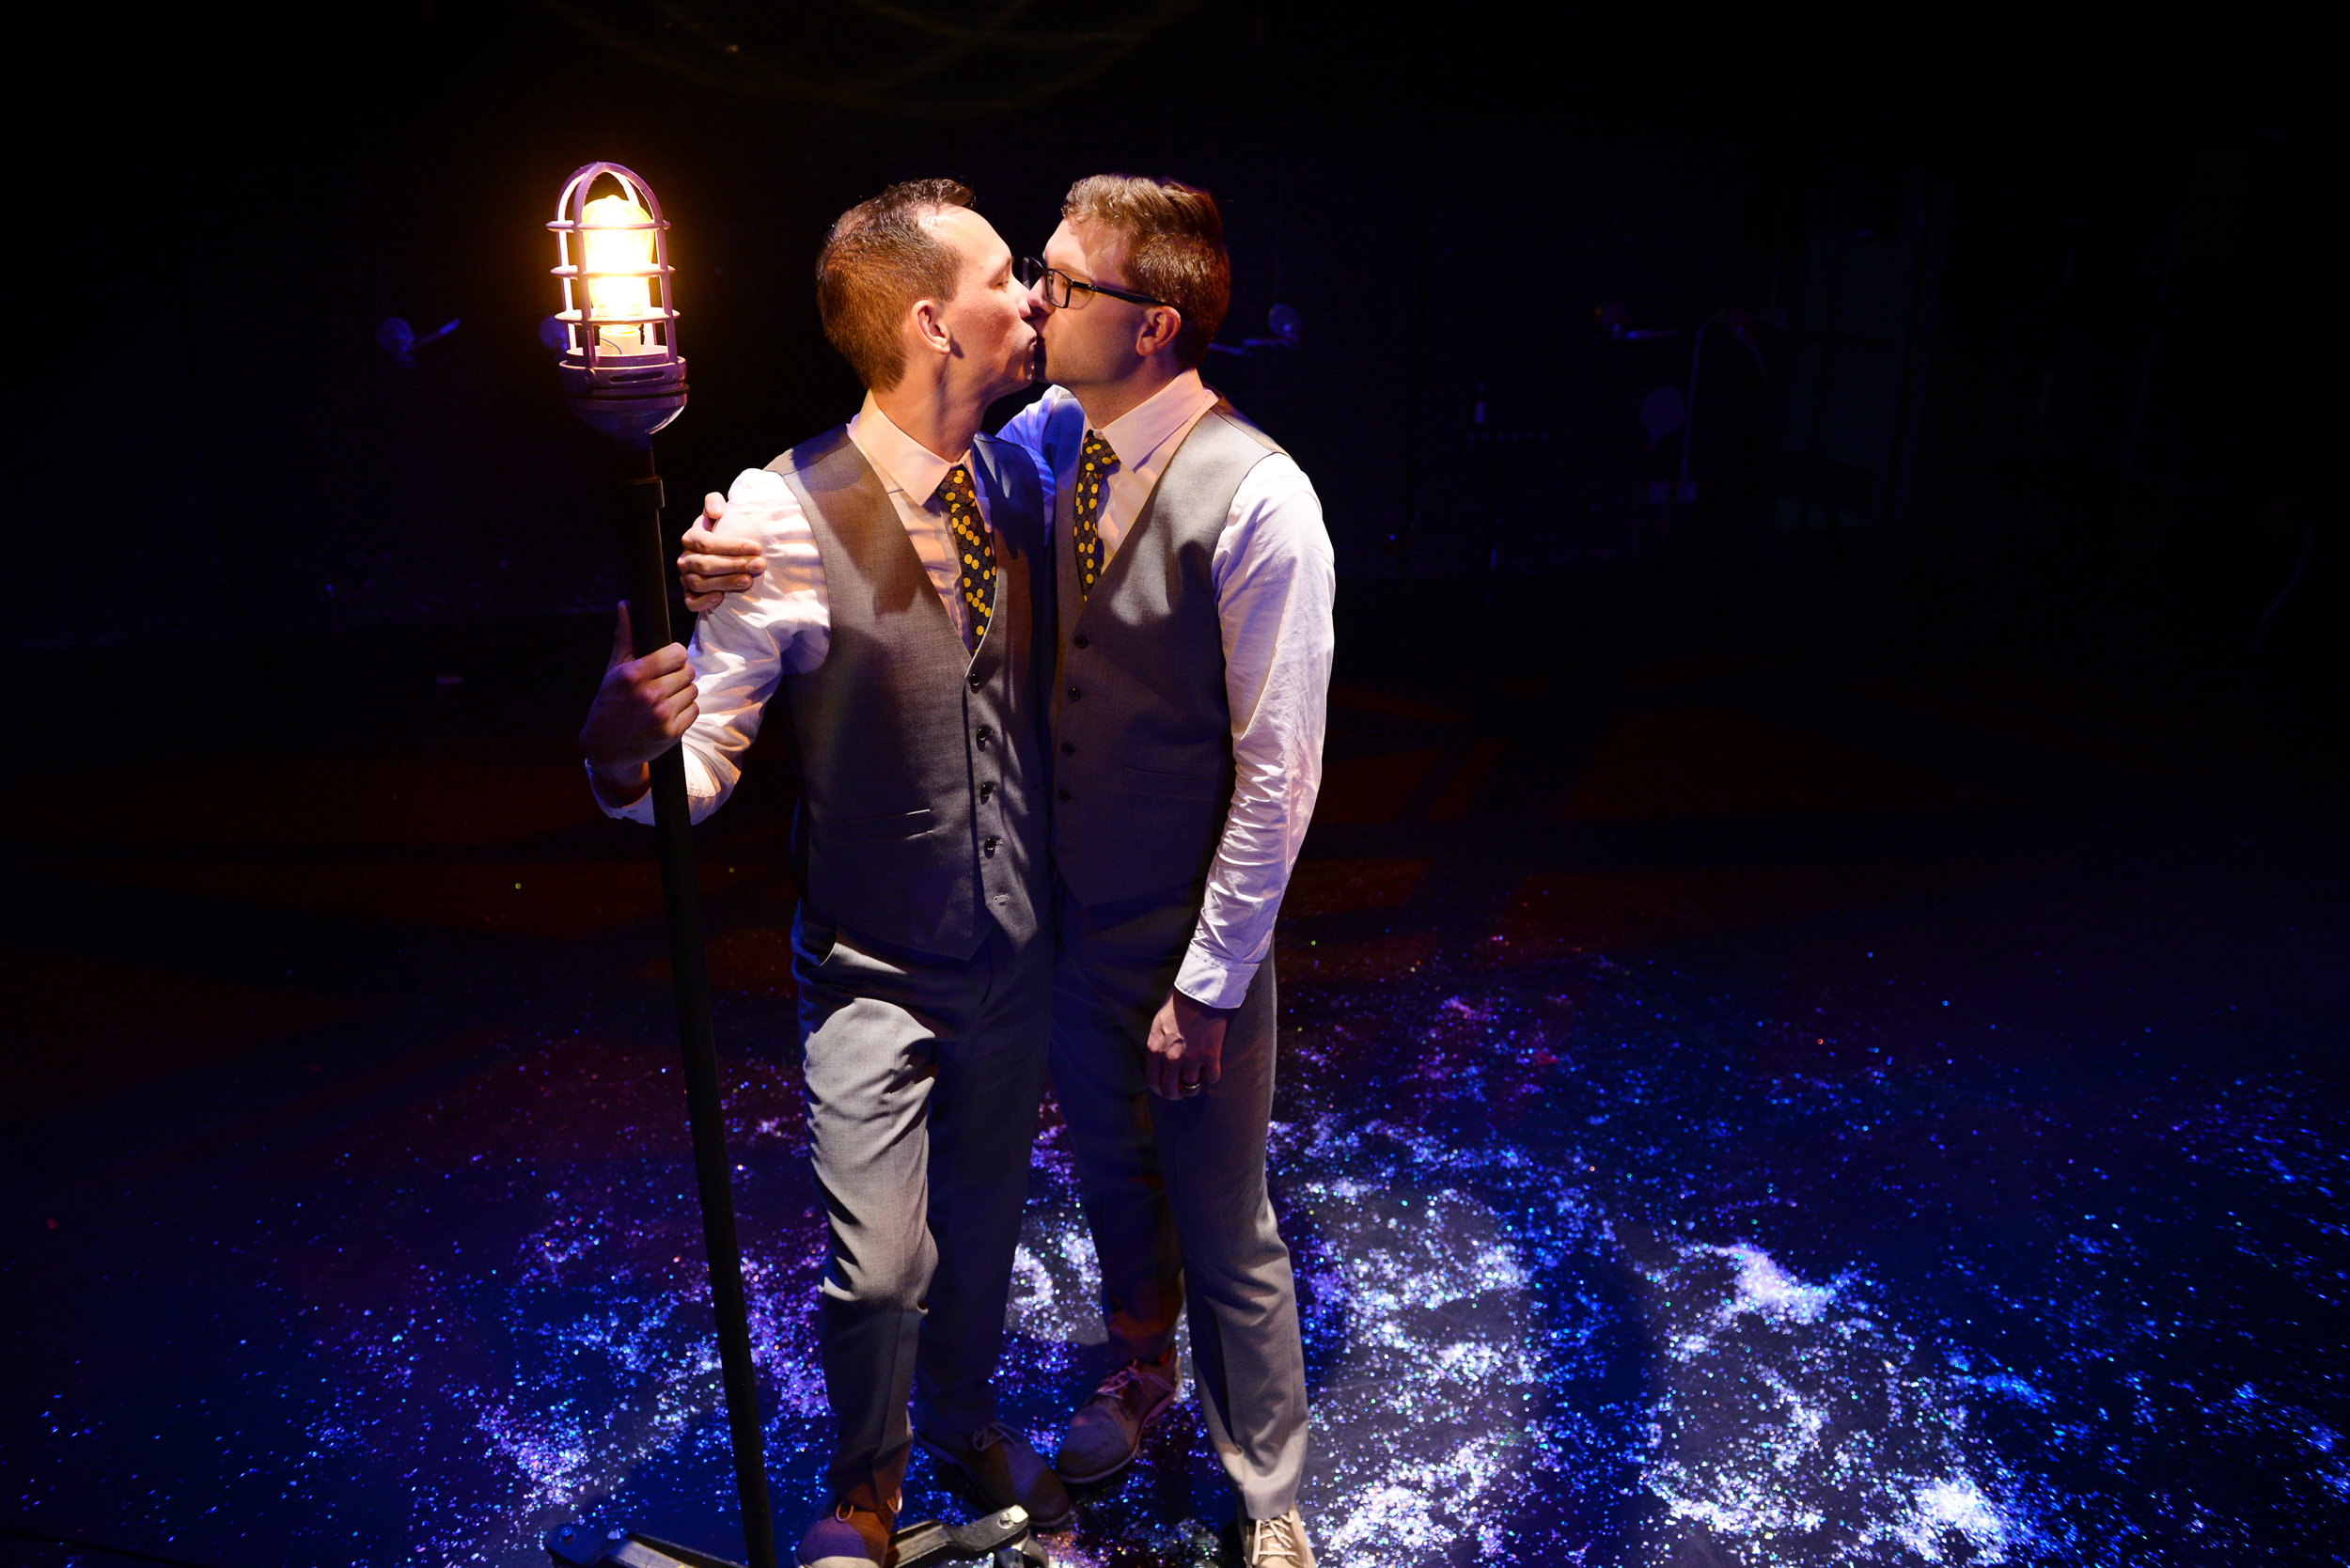 Grooms kissing holding lamp-post after wedding with glittering confetti on the ground